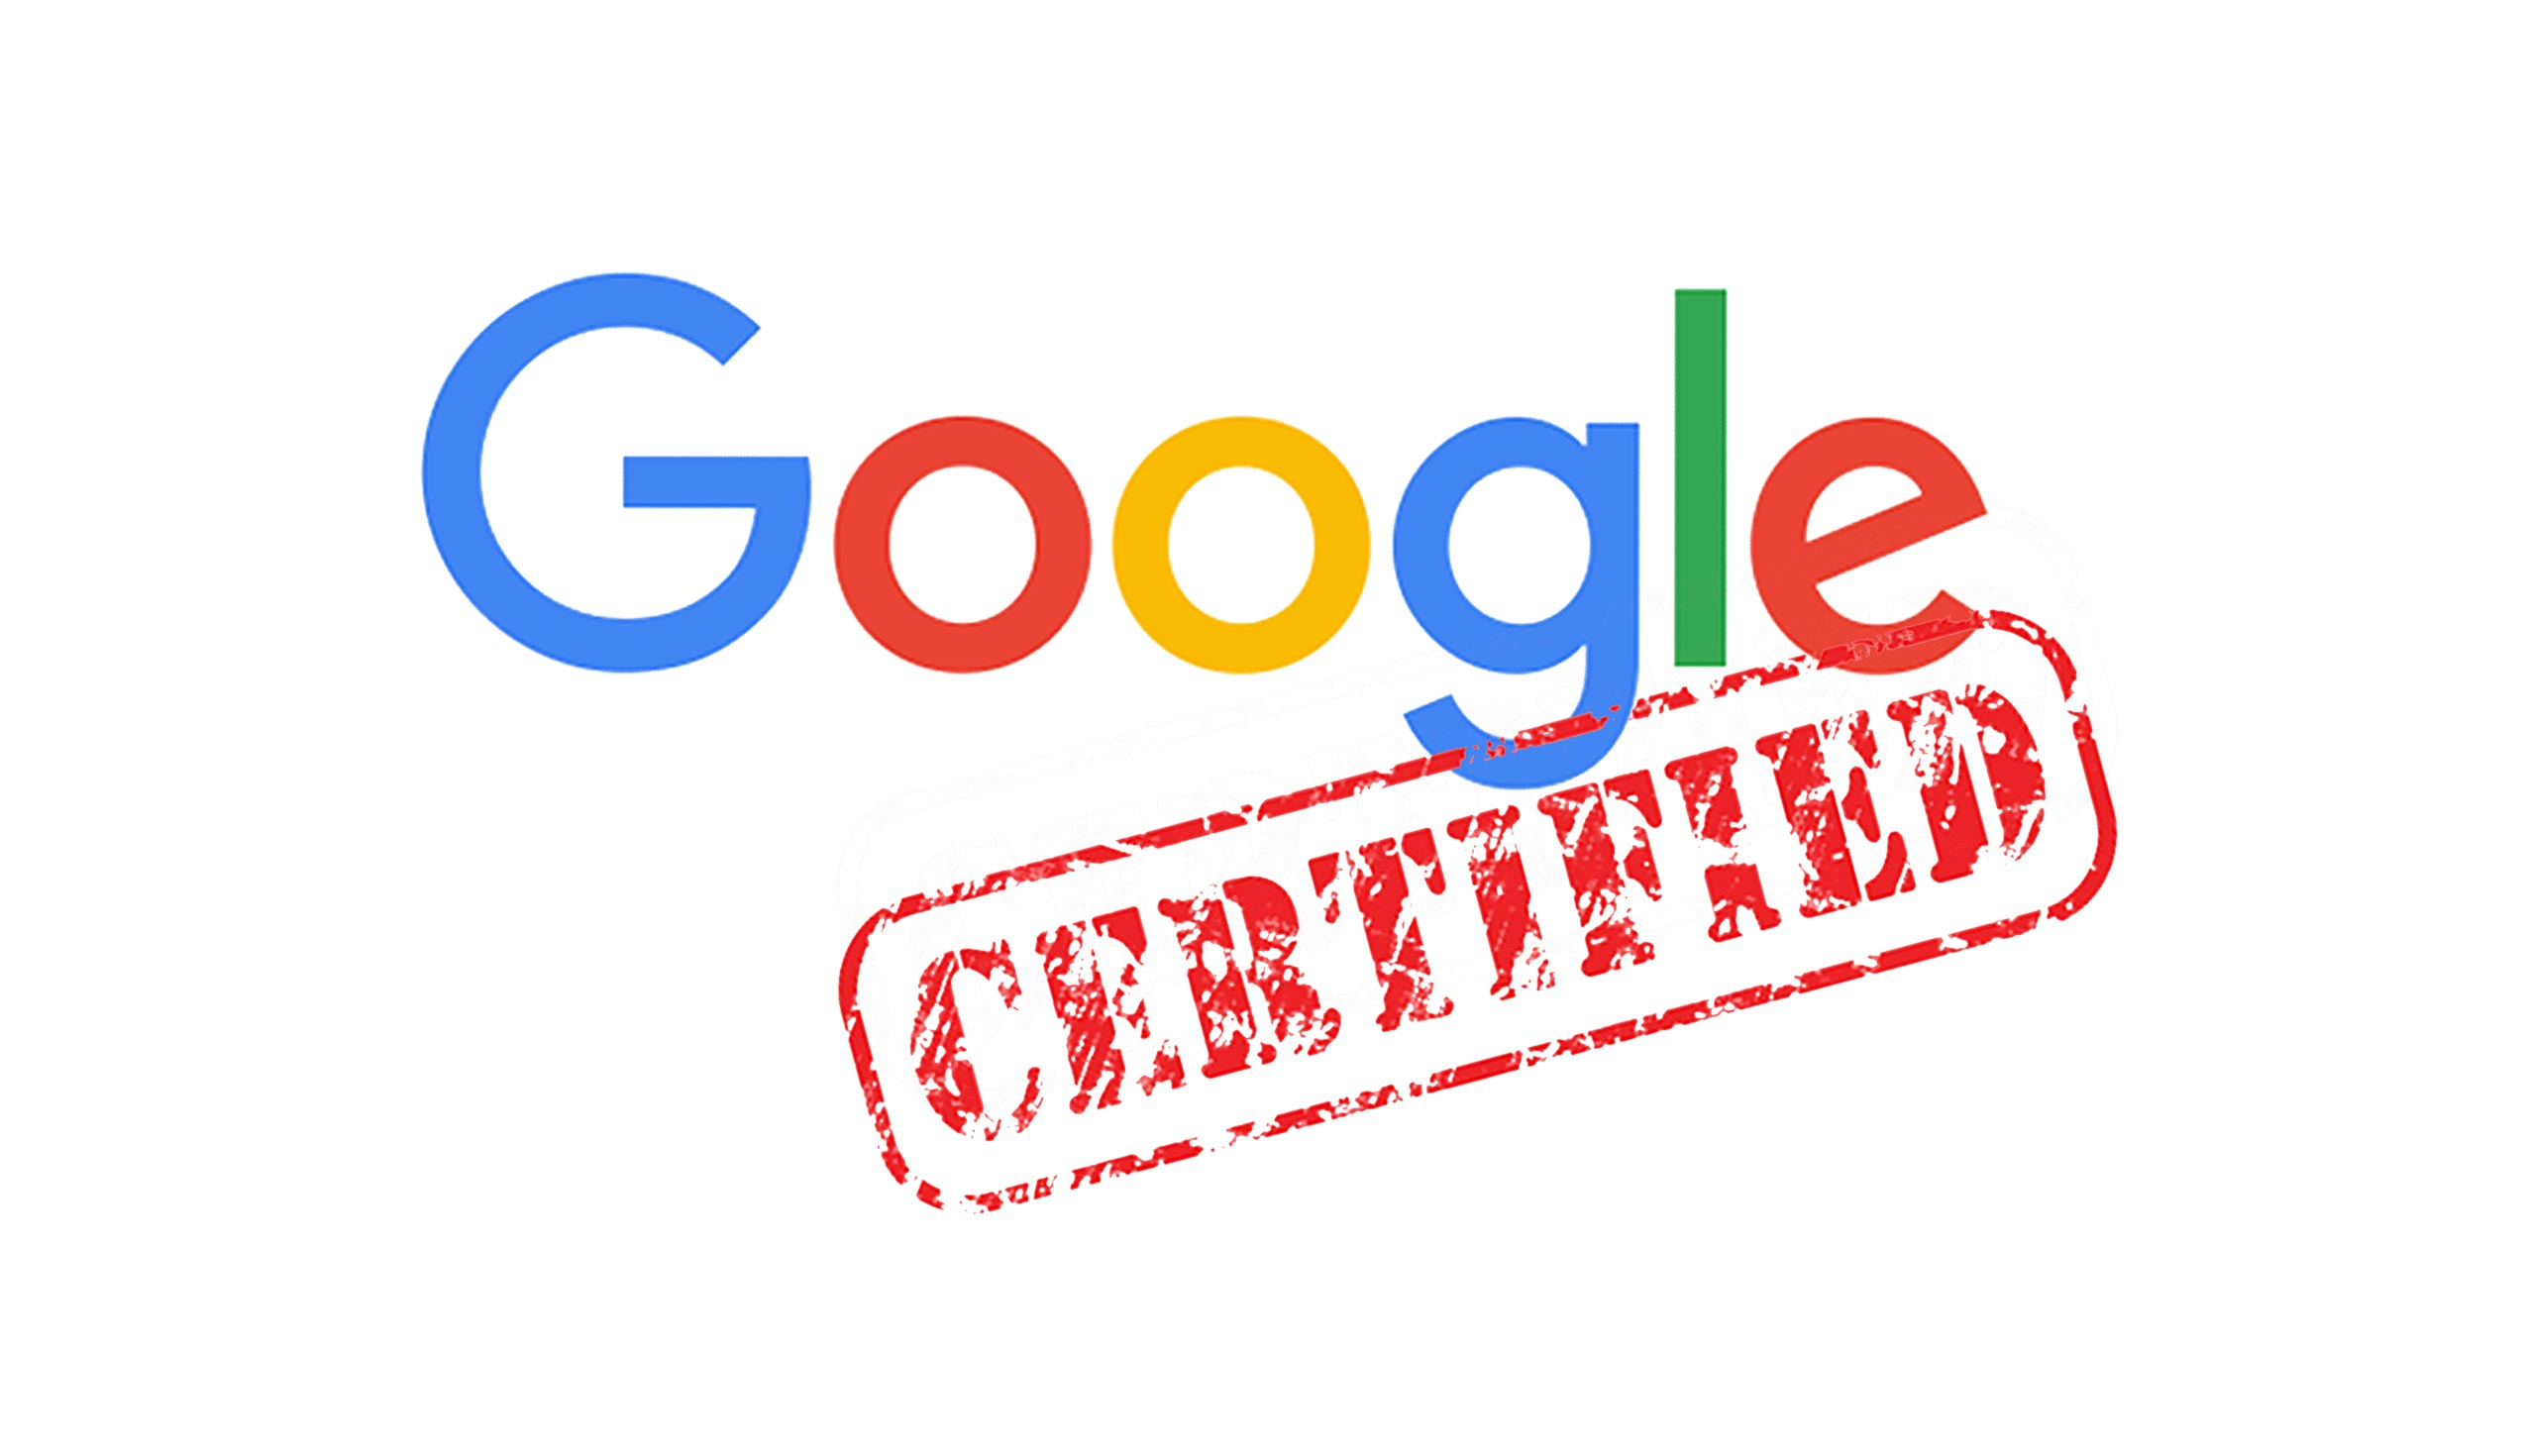 Advertise on Google with Our Experienced, Certified Team